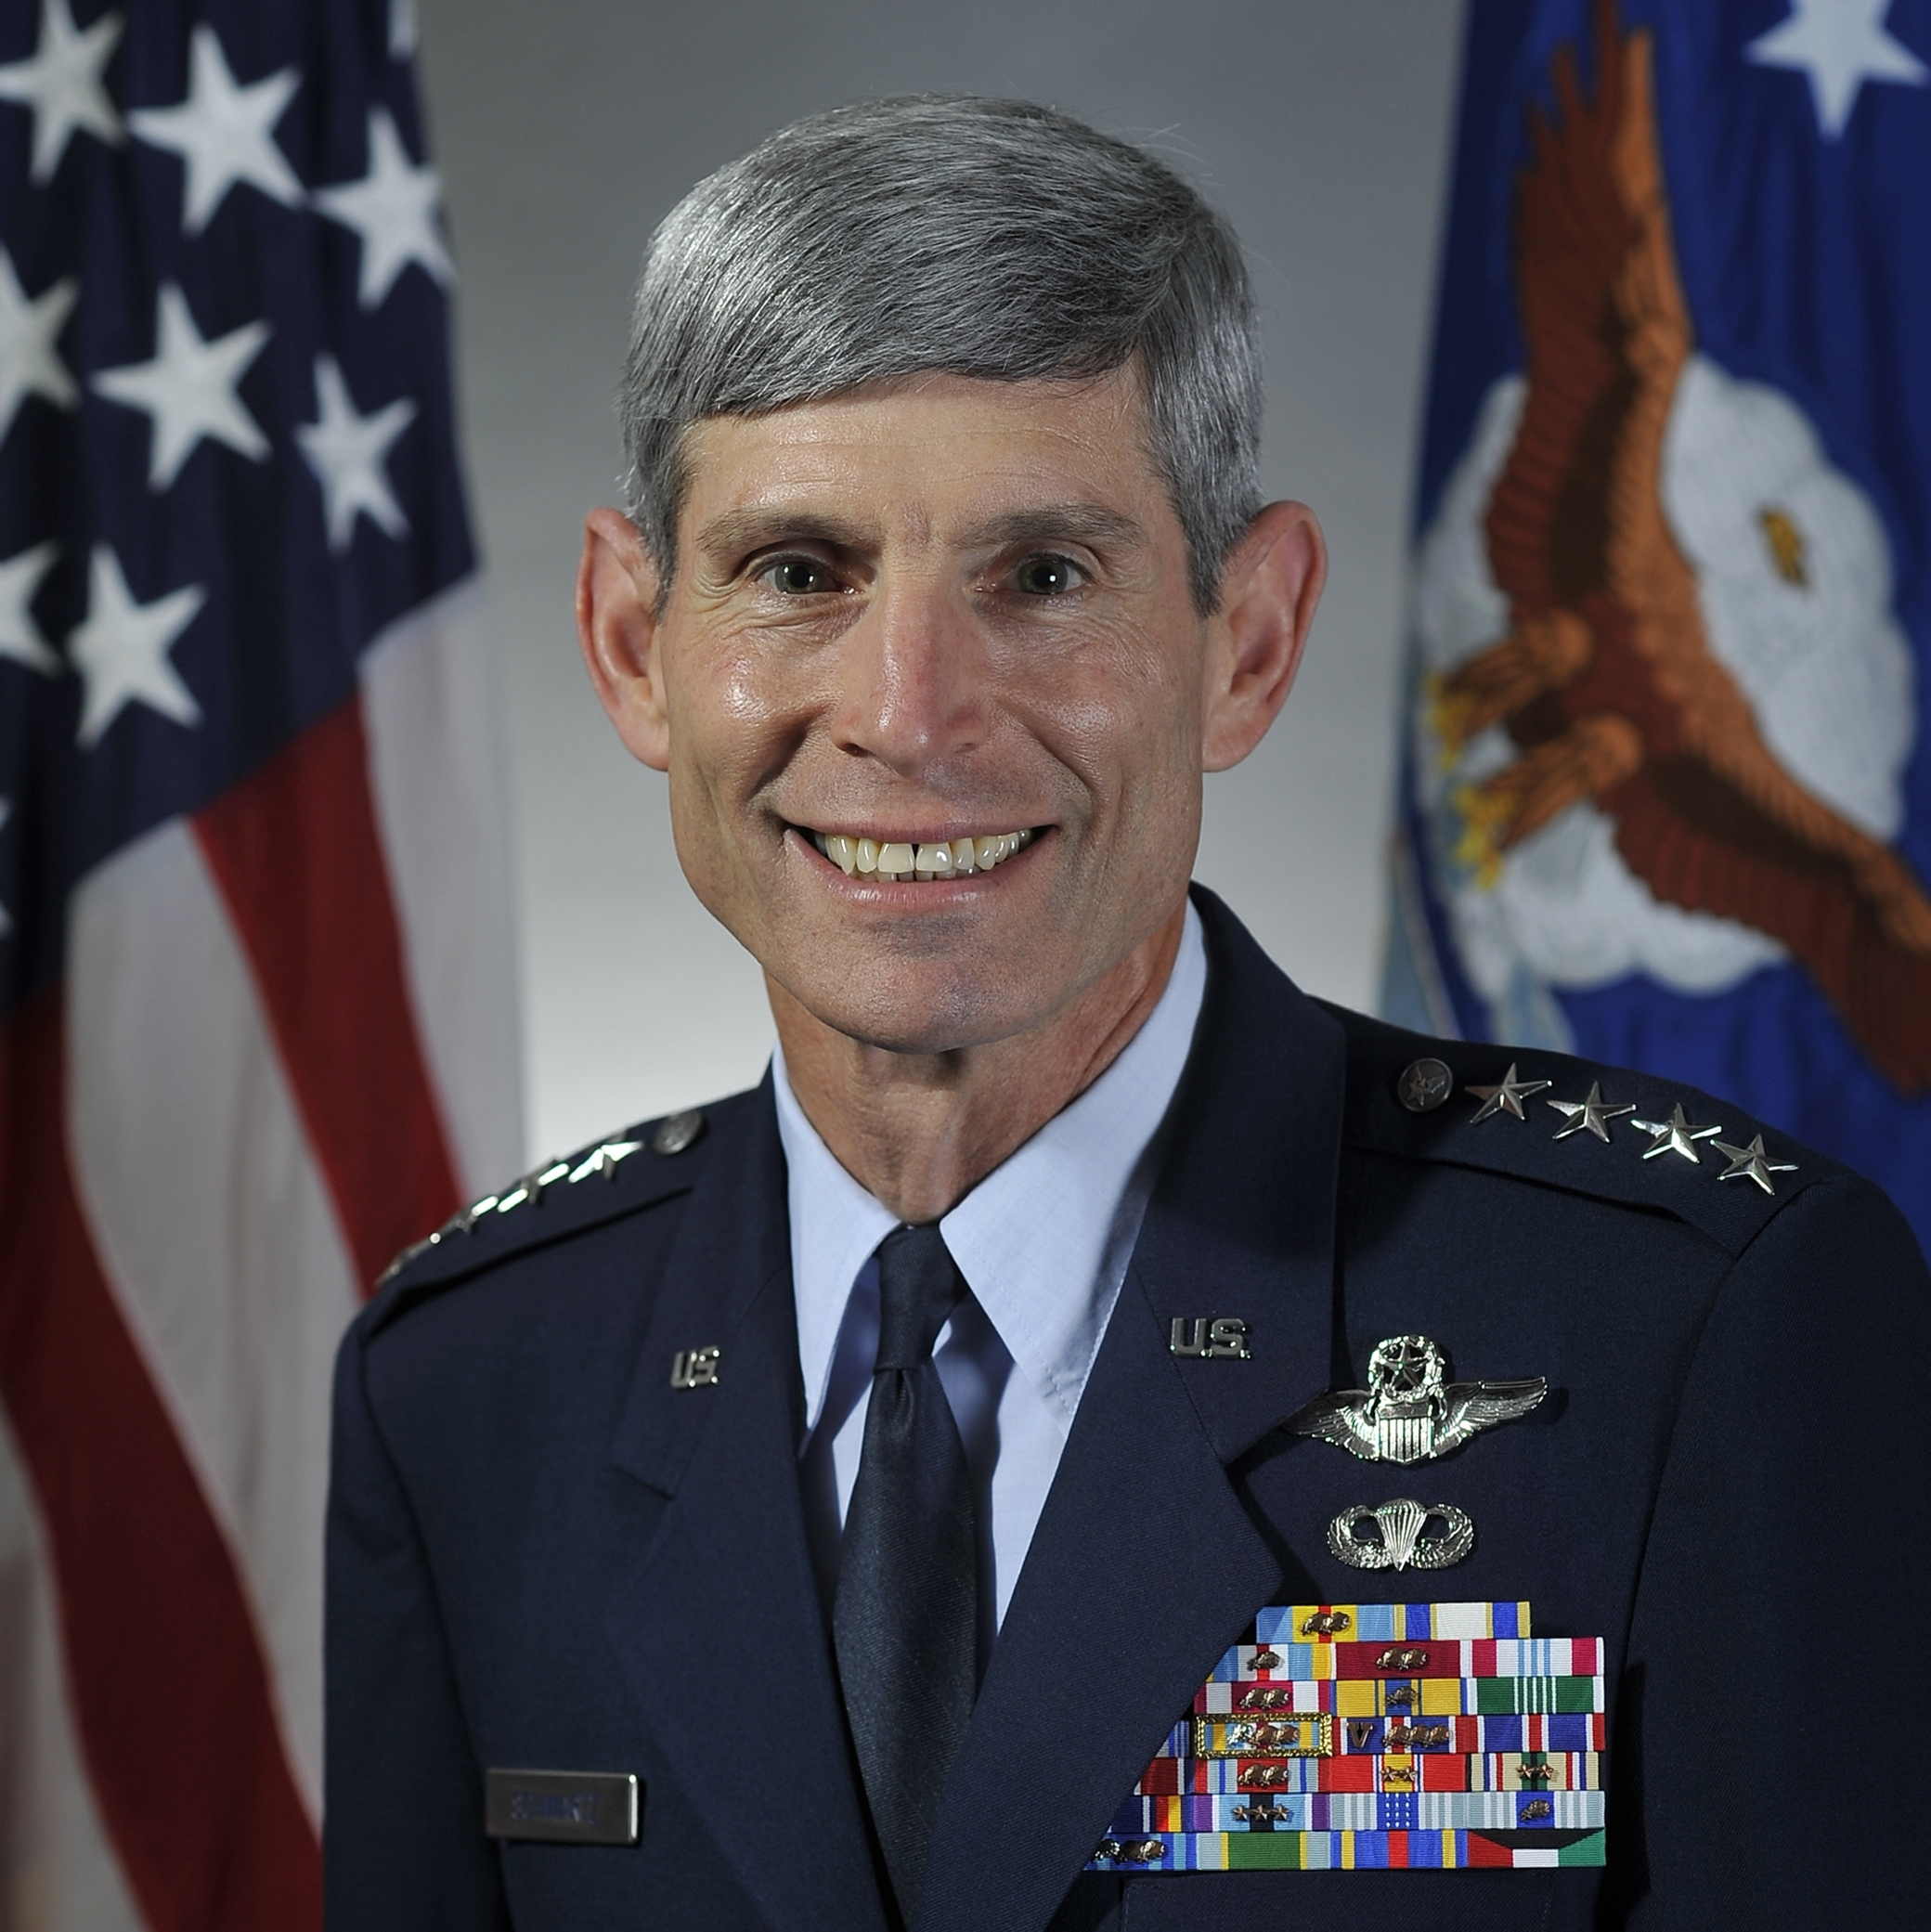 General (Ret.) Norton A. Schwartz (USAFA '73), President & CEO, Business Executives for National Security; former Chief of Staff of the U.S. Air Force